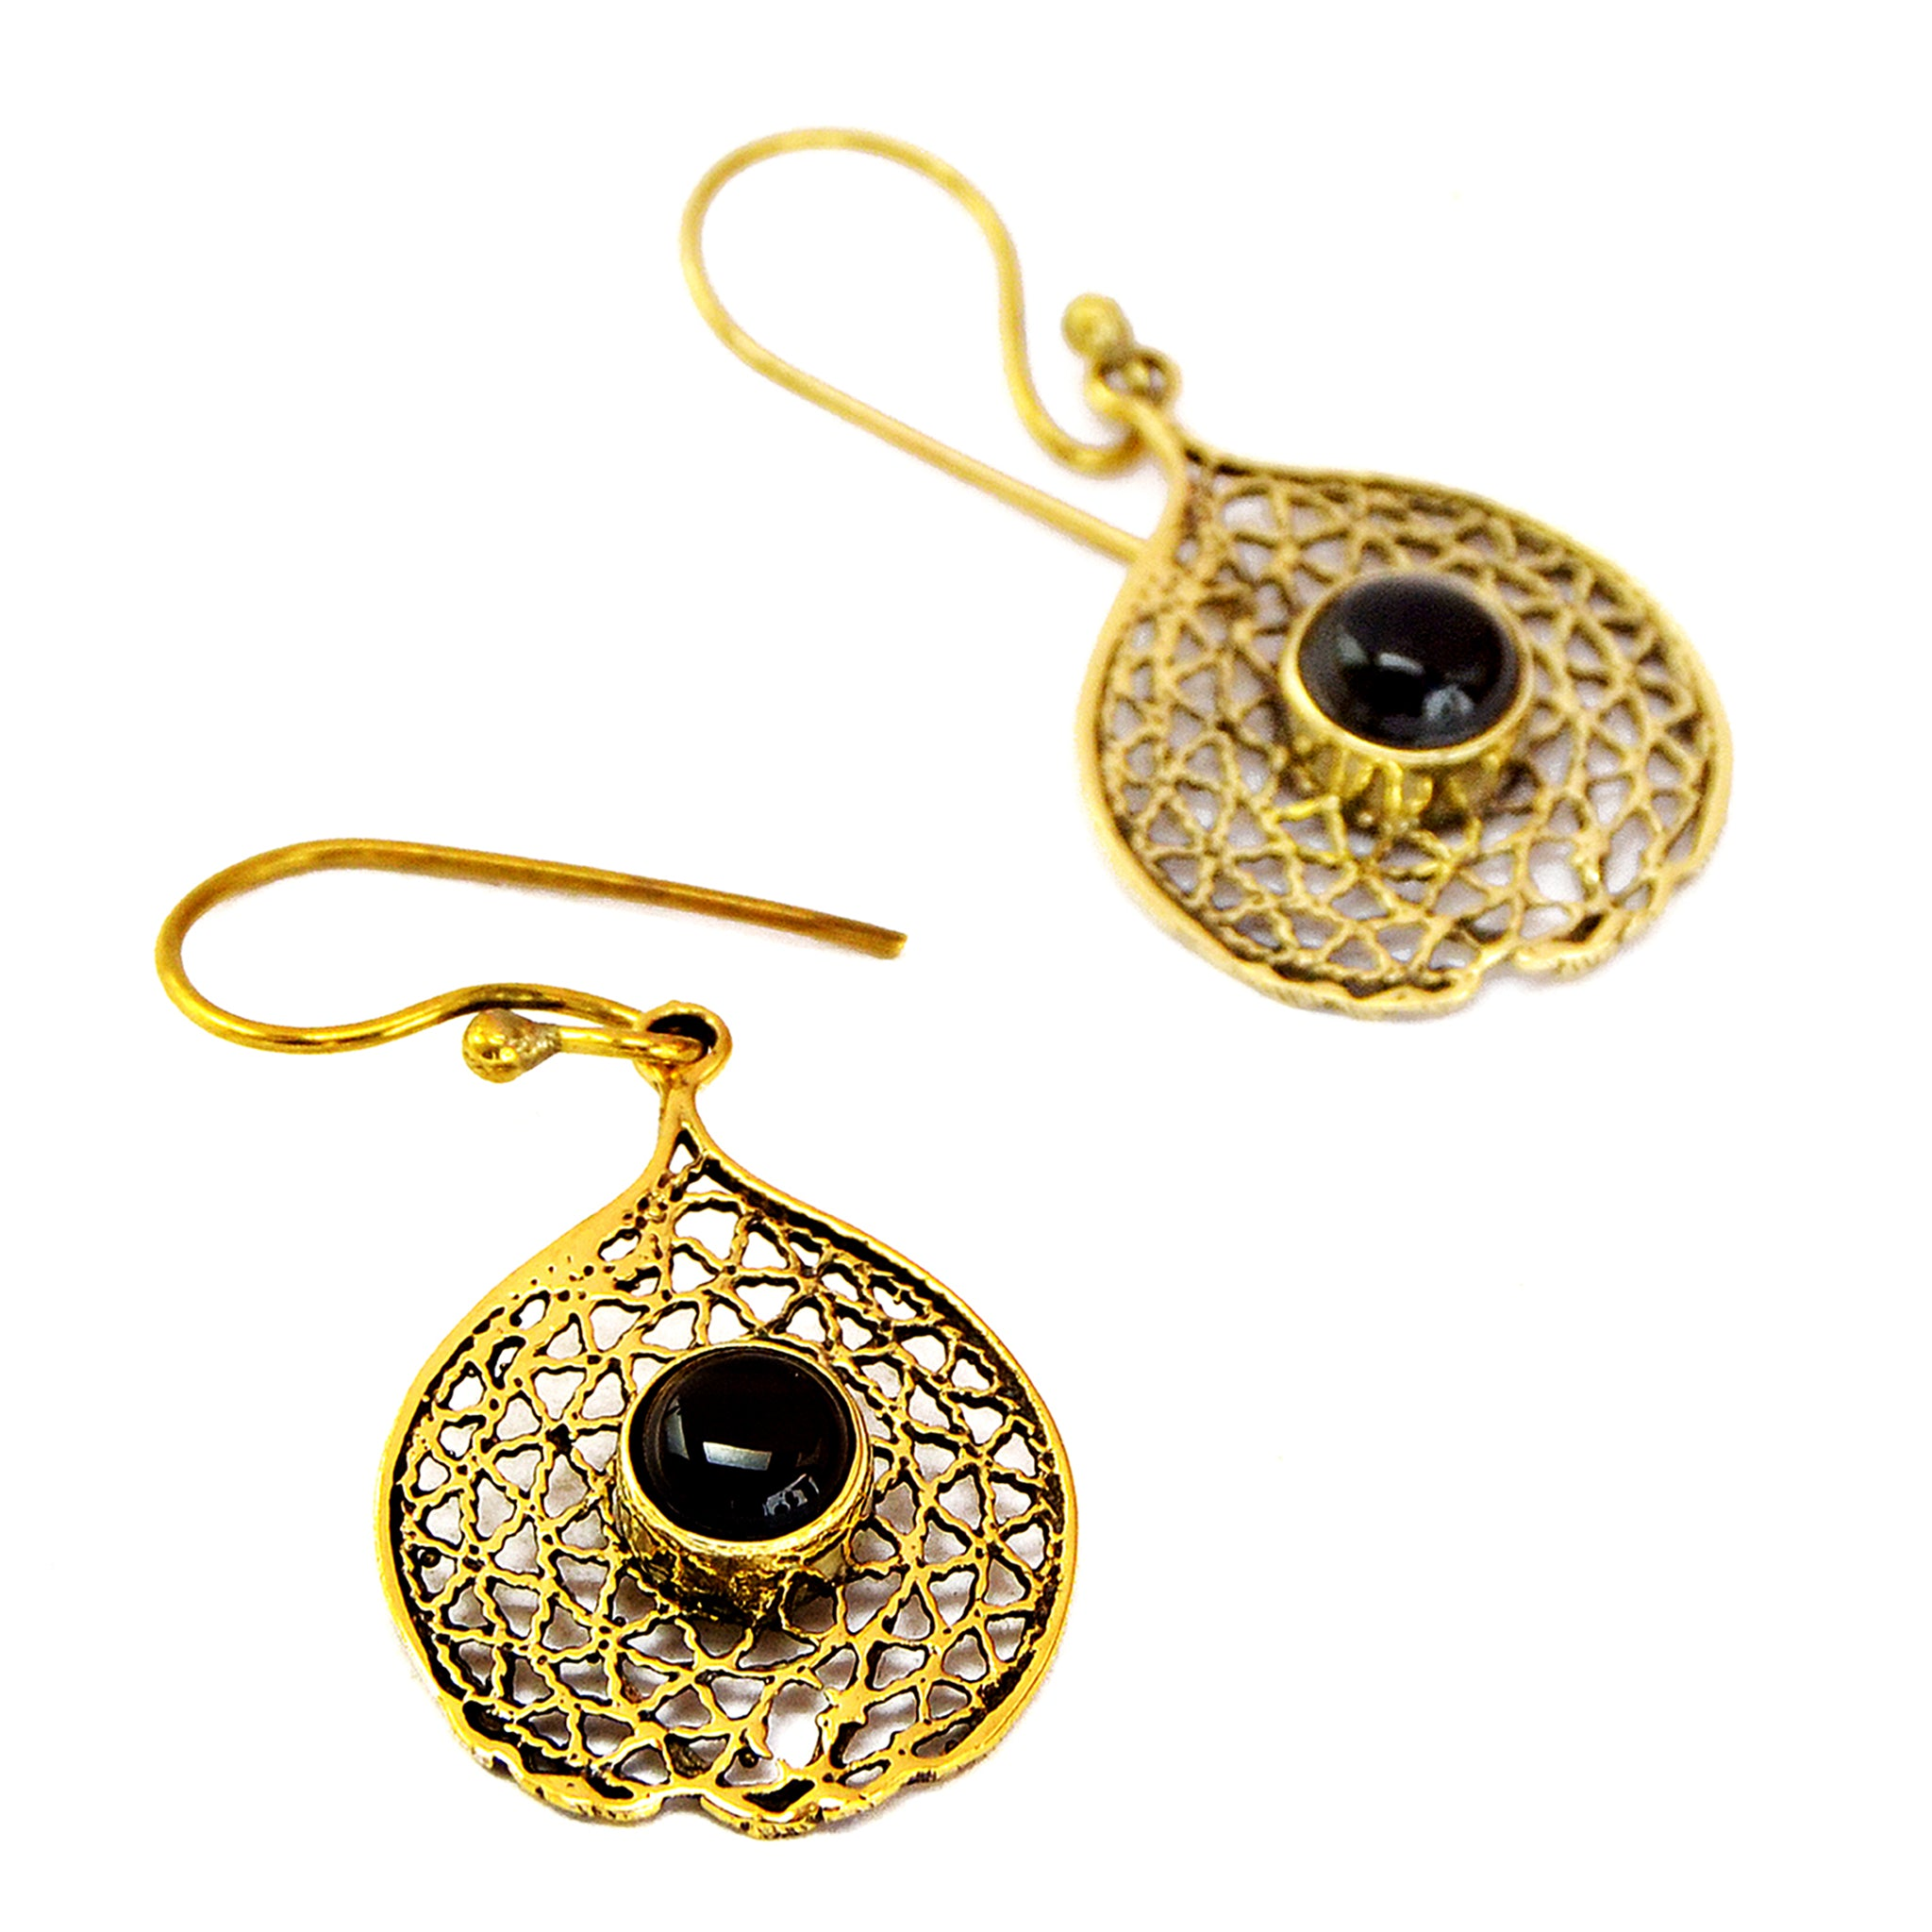 Indian earrings with stone